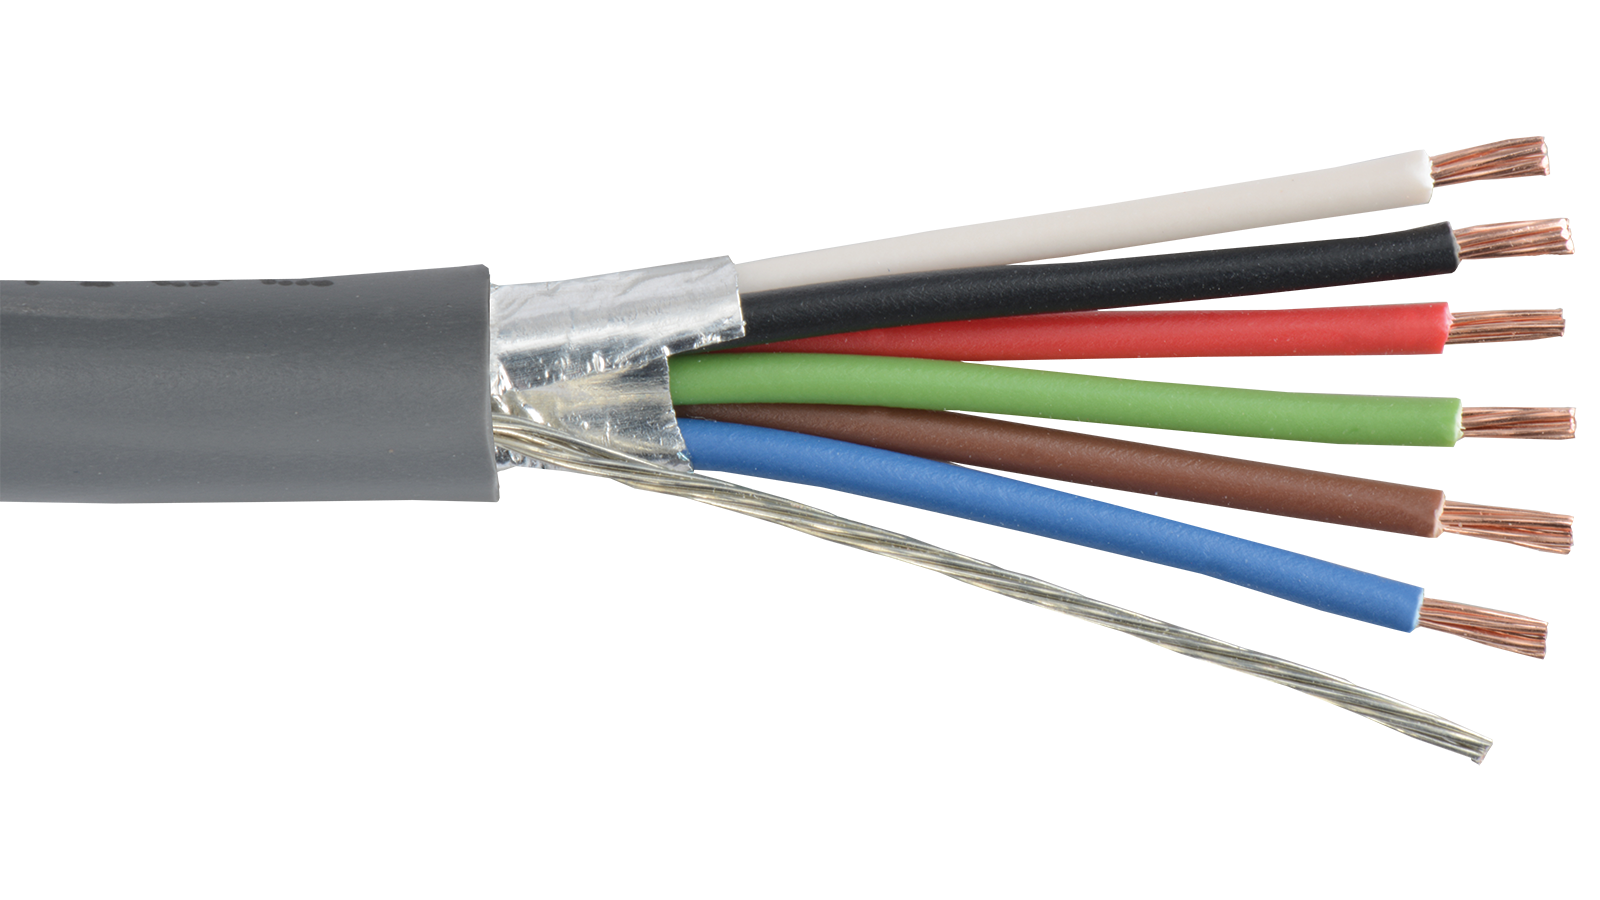 Low Voltage Wire Shielded Cable : C sh gry commercial grade general purpose awg